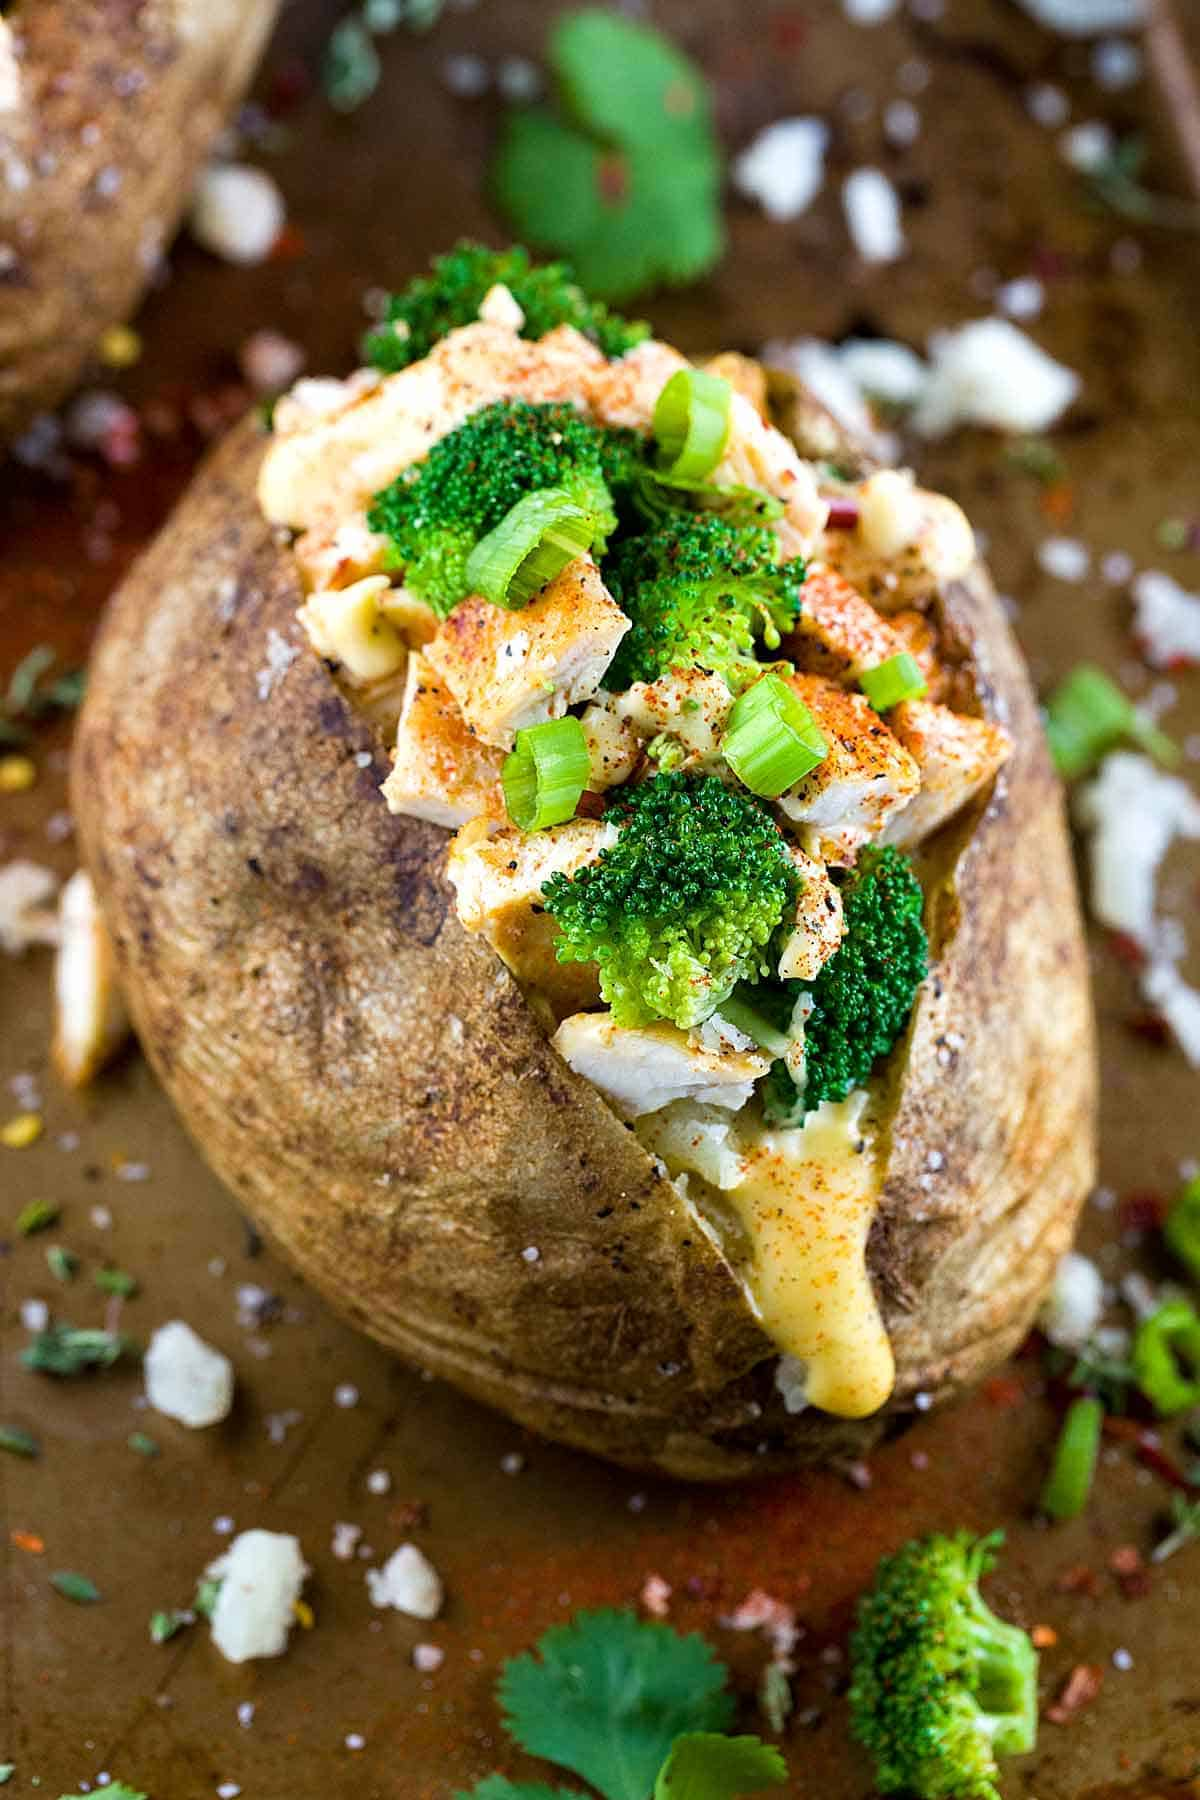 simple dinner ideas, Chicken Broccoli Stuffed Baked Potato with Cheese Sauce